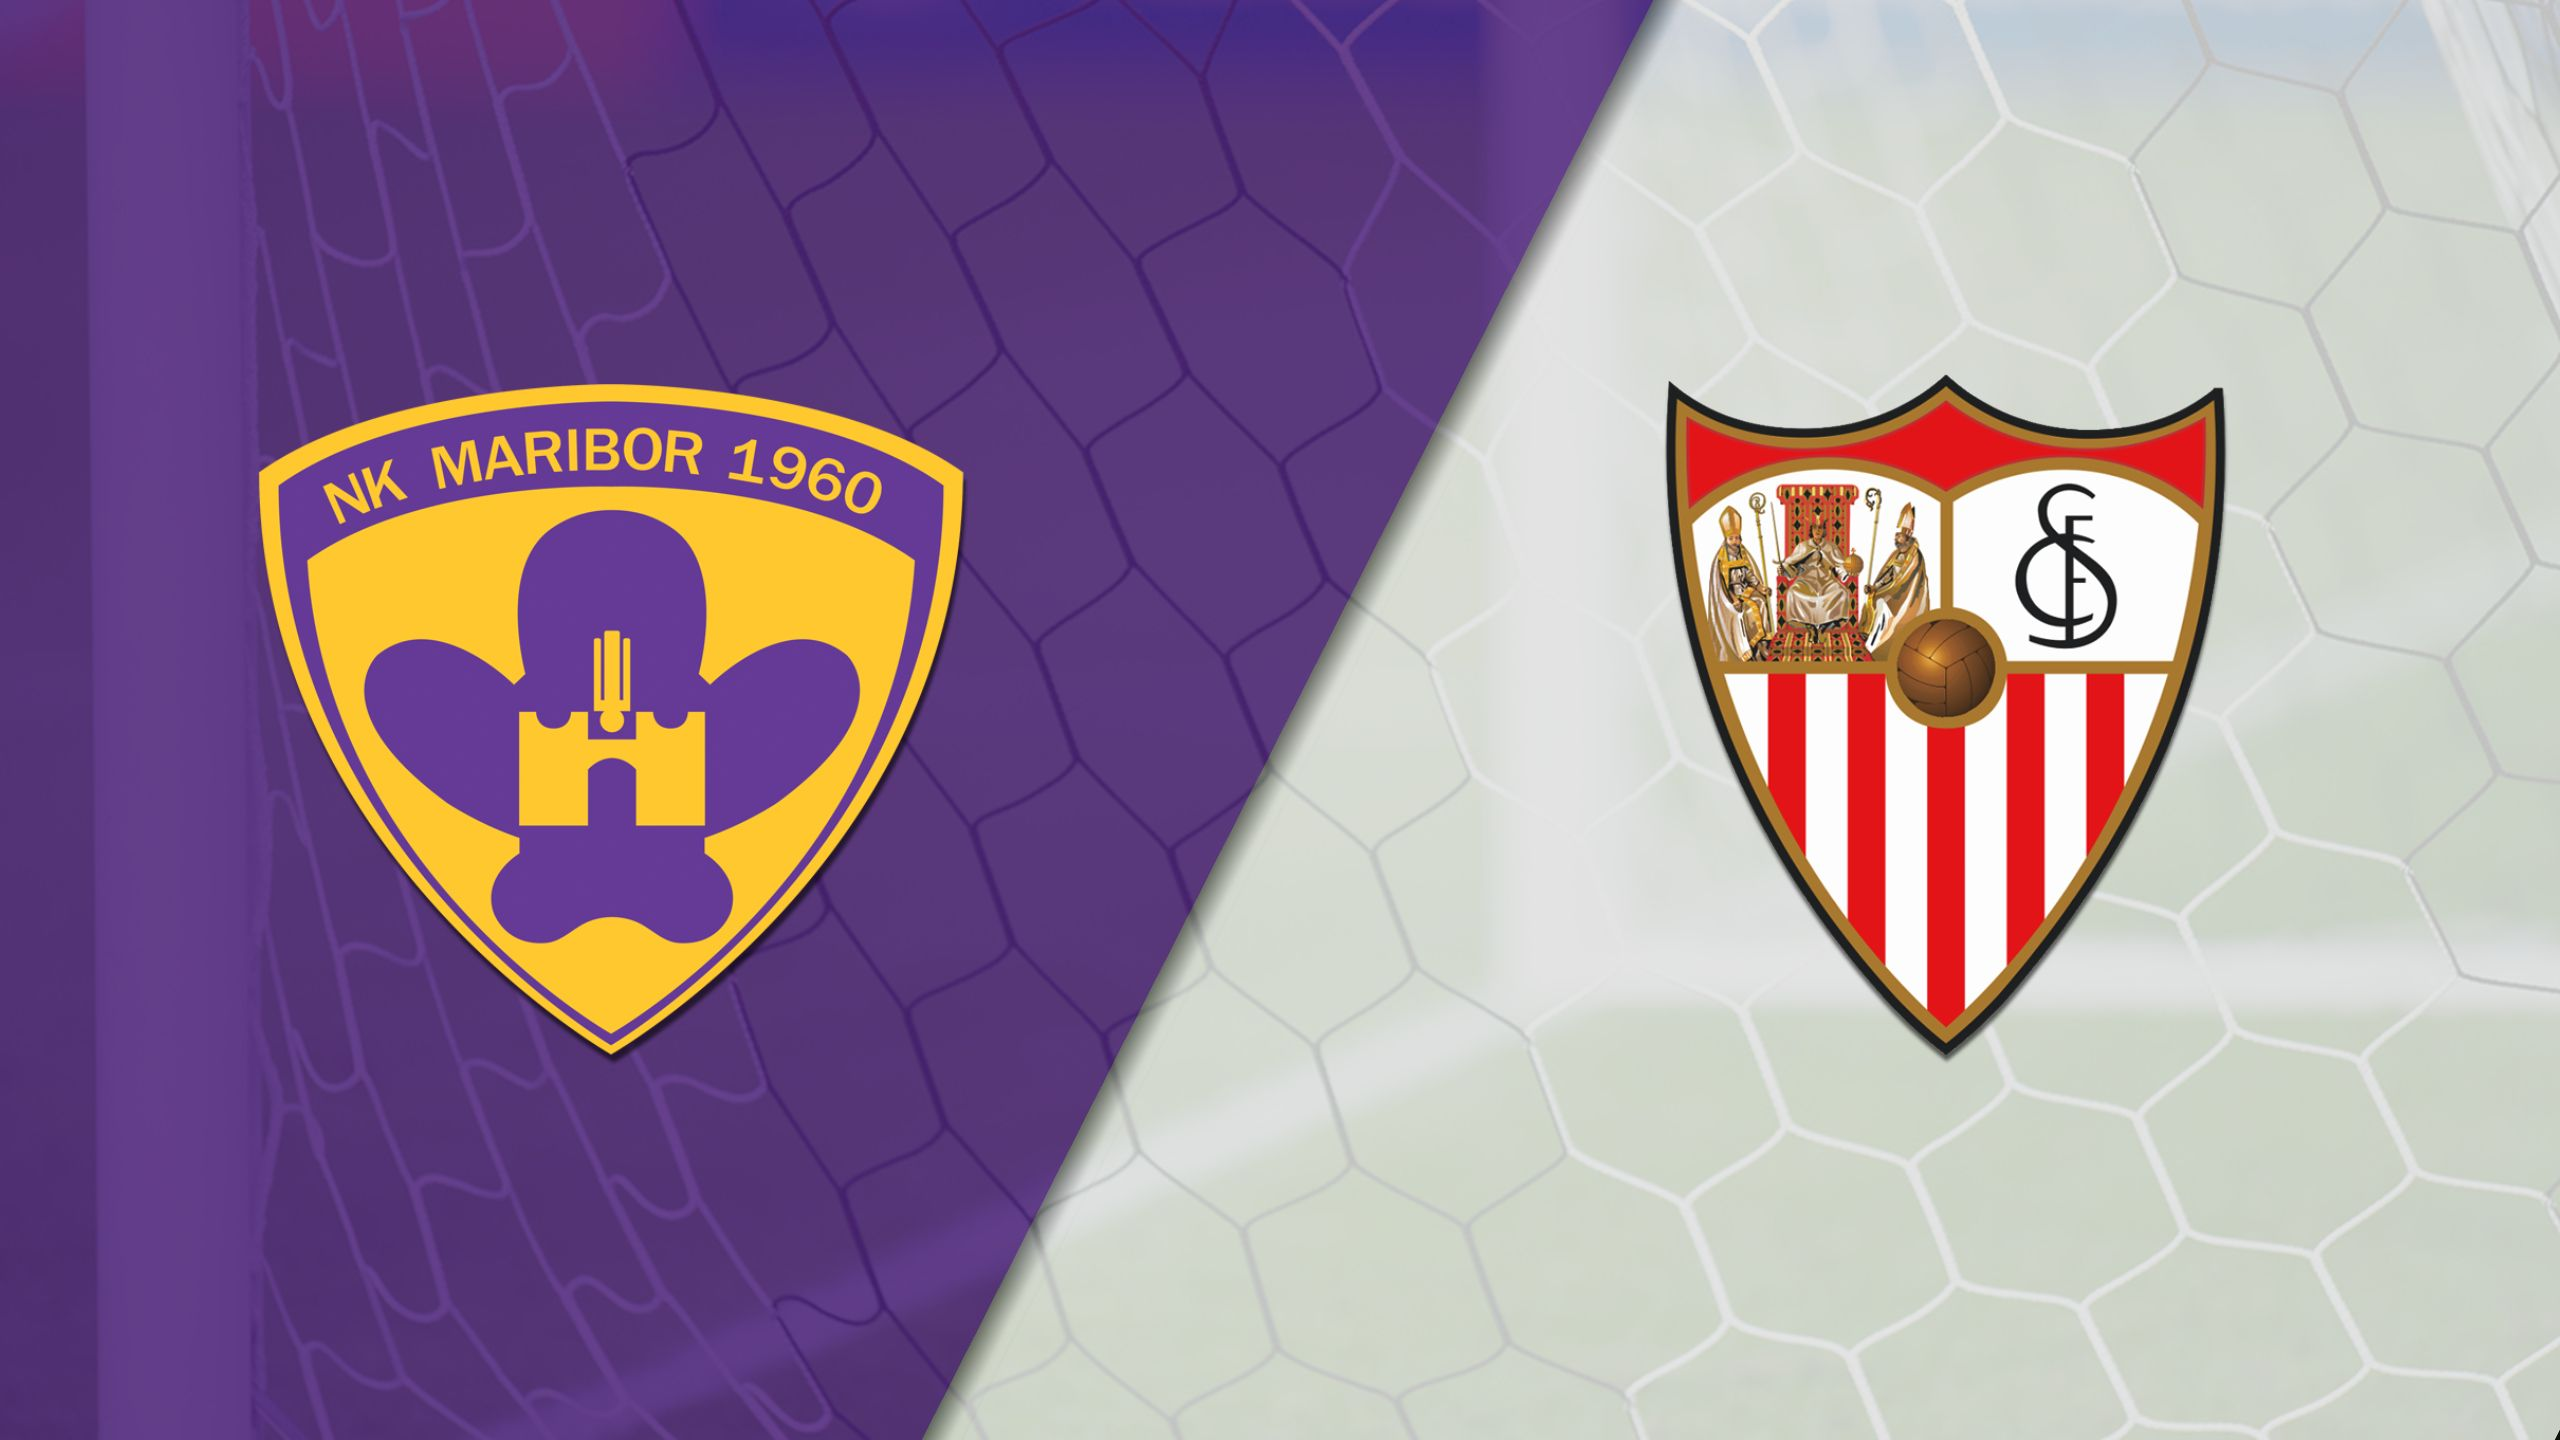 In Spanish - NK Maribor vs. Sevilla (Group Stage) (UEFA Champions League) (re-air)